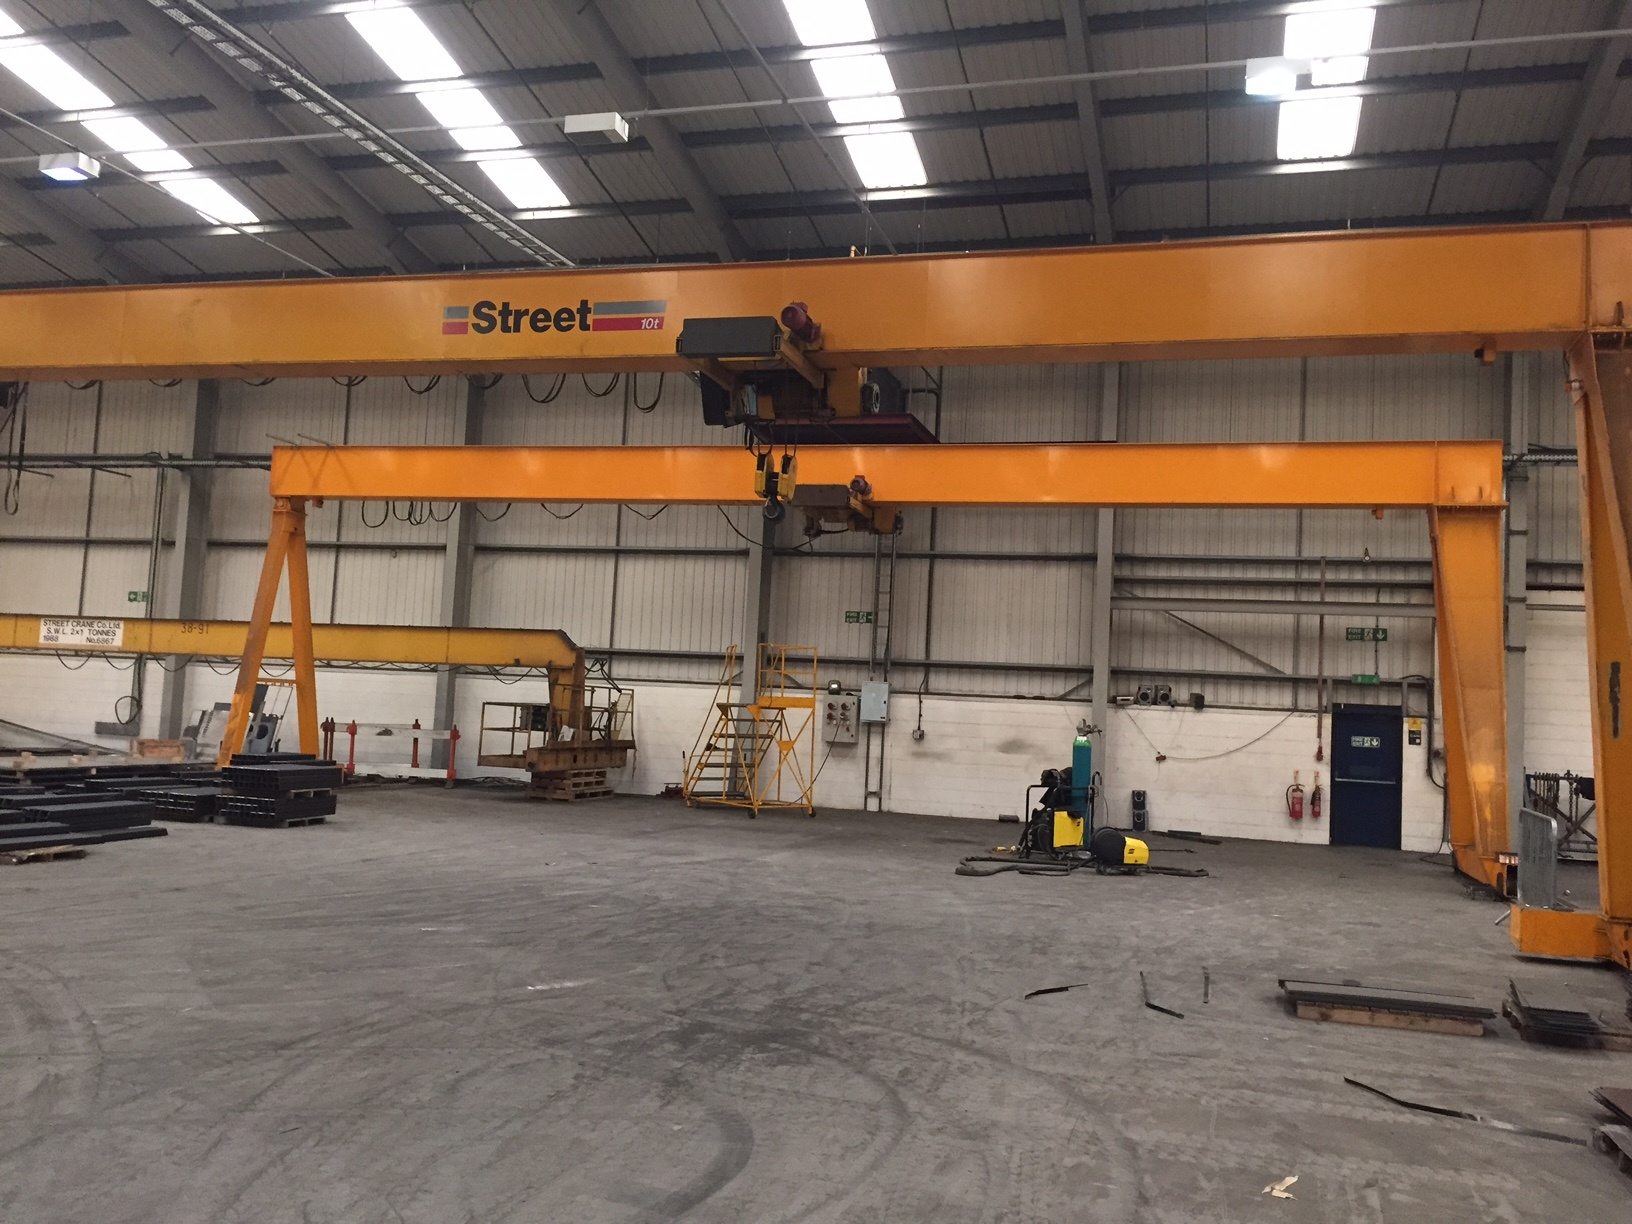 Used Crane for sale – Street 10 Tonne 16 Metre Crane